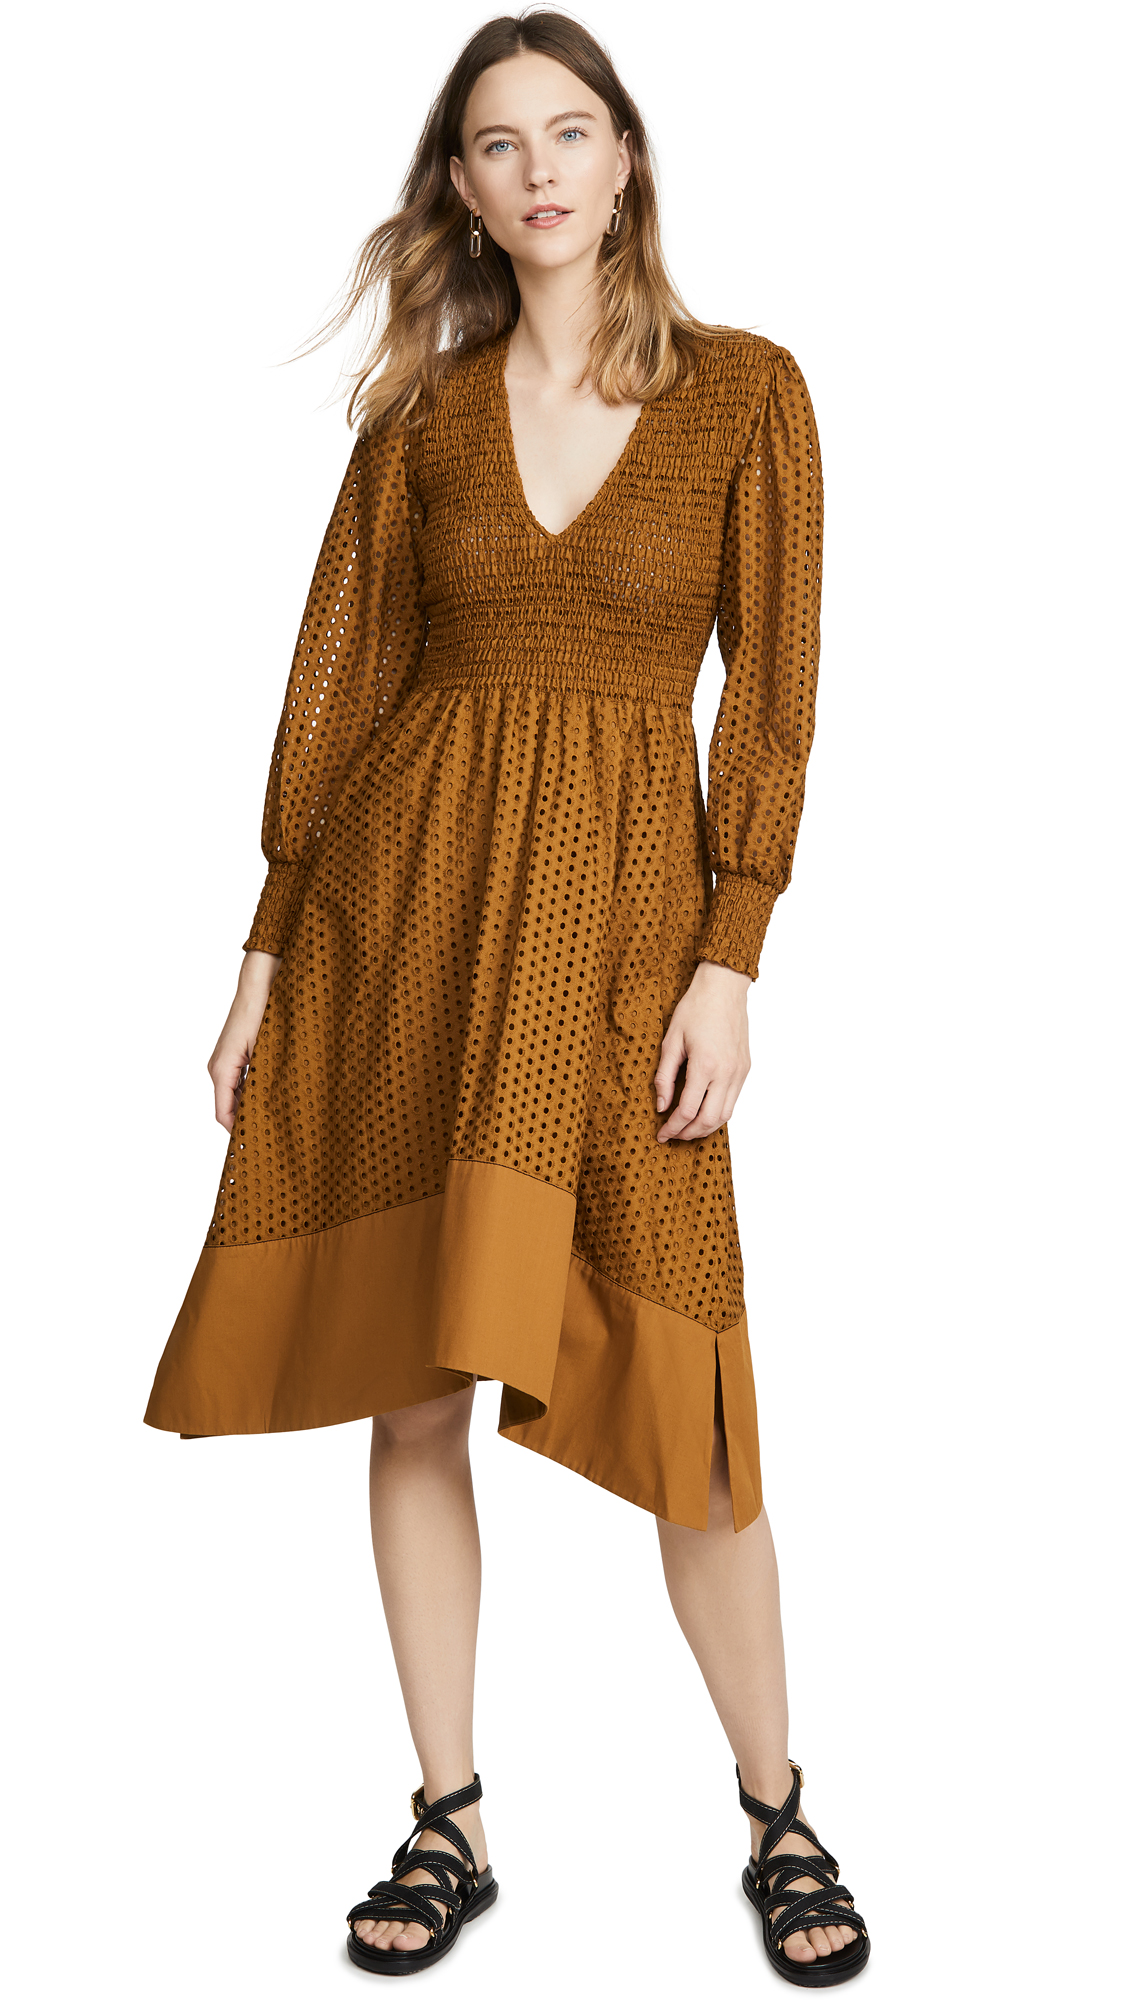 Photo of Proenza Schouler White Label Long Sleeve Smocked Top Dress - shop Proenza Schouler White Label Clothing, Dresses online